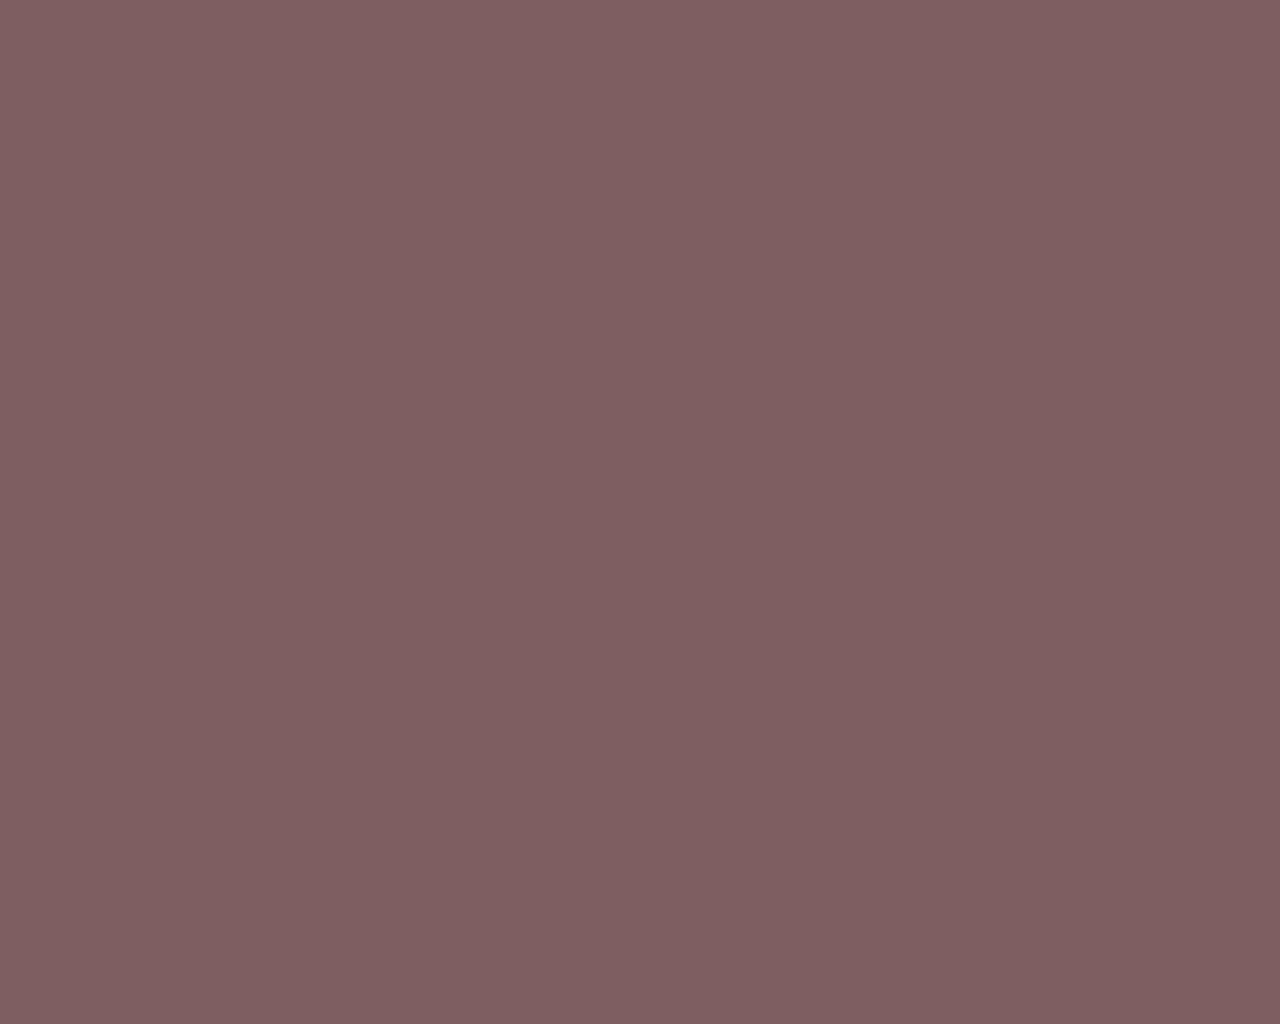 1280x1024 Deep Taupe Solid Color Background